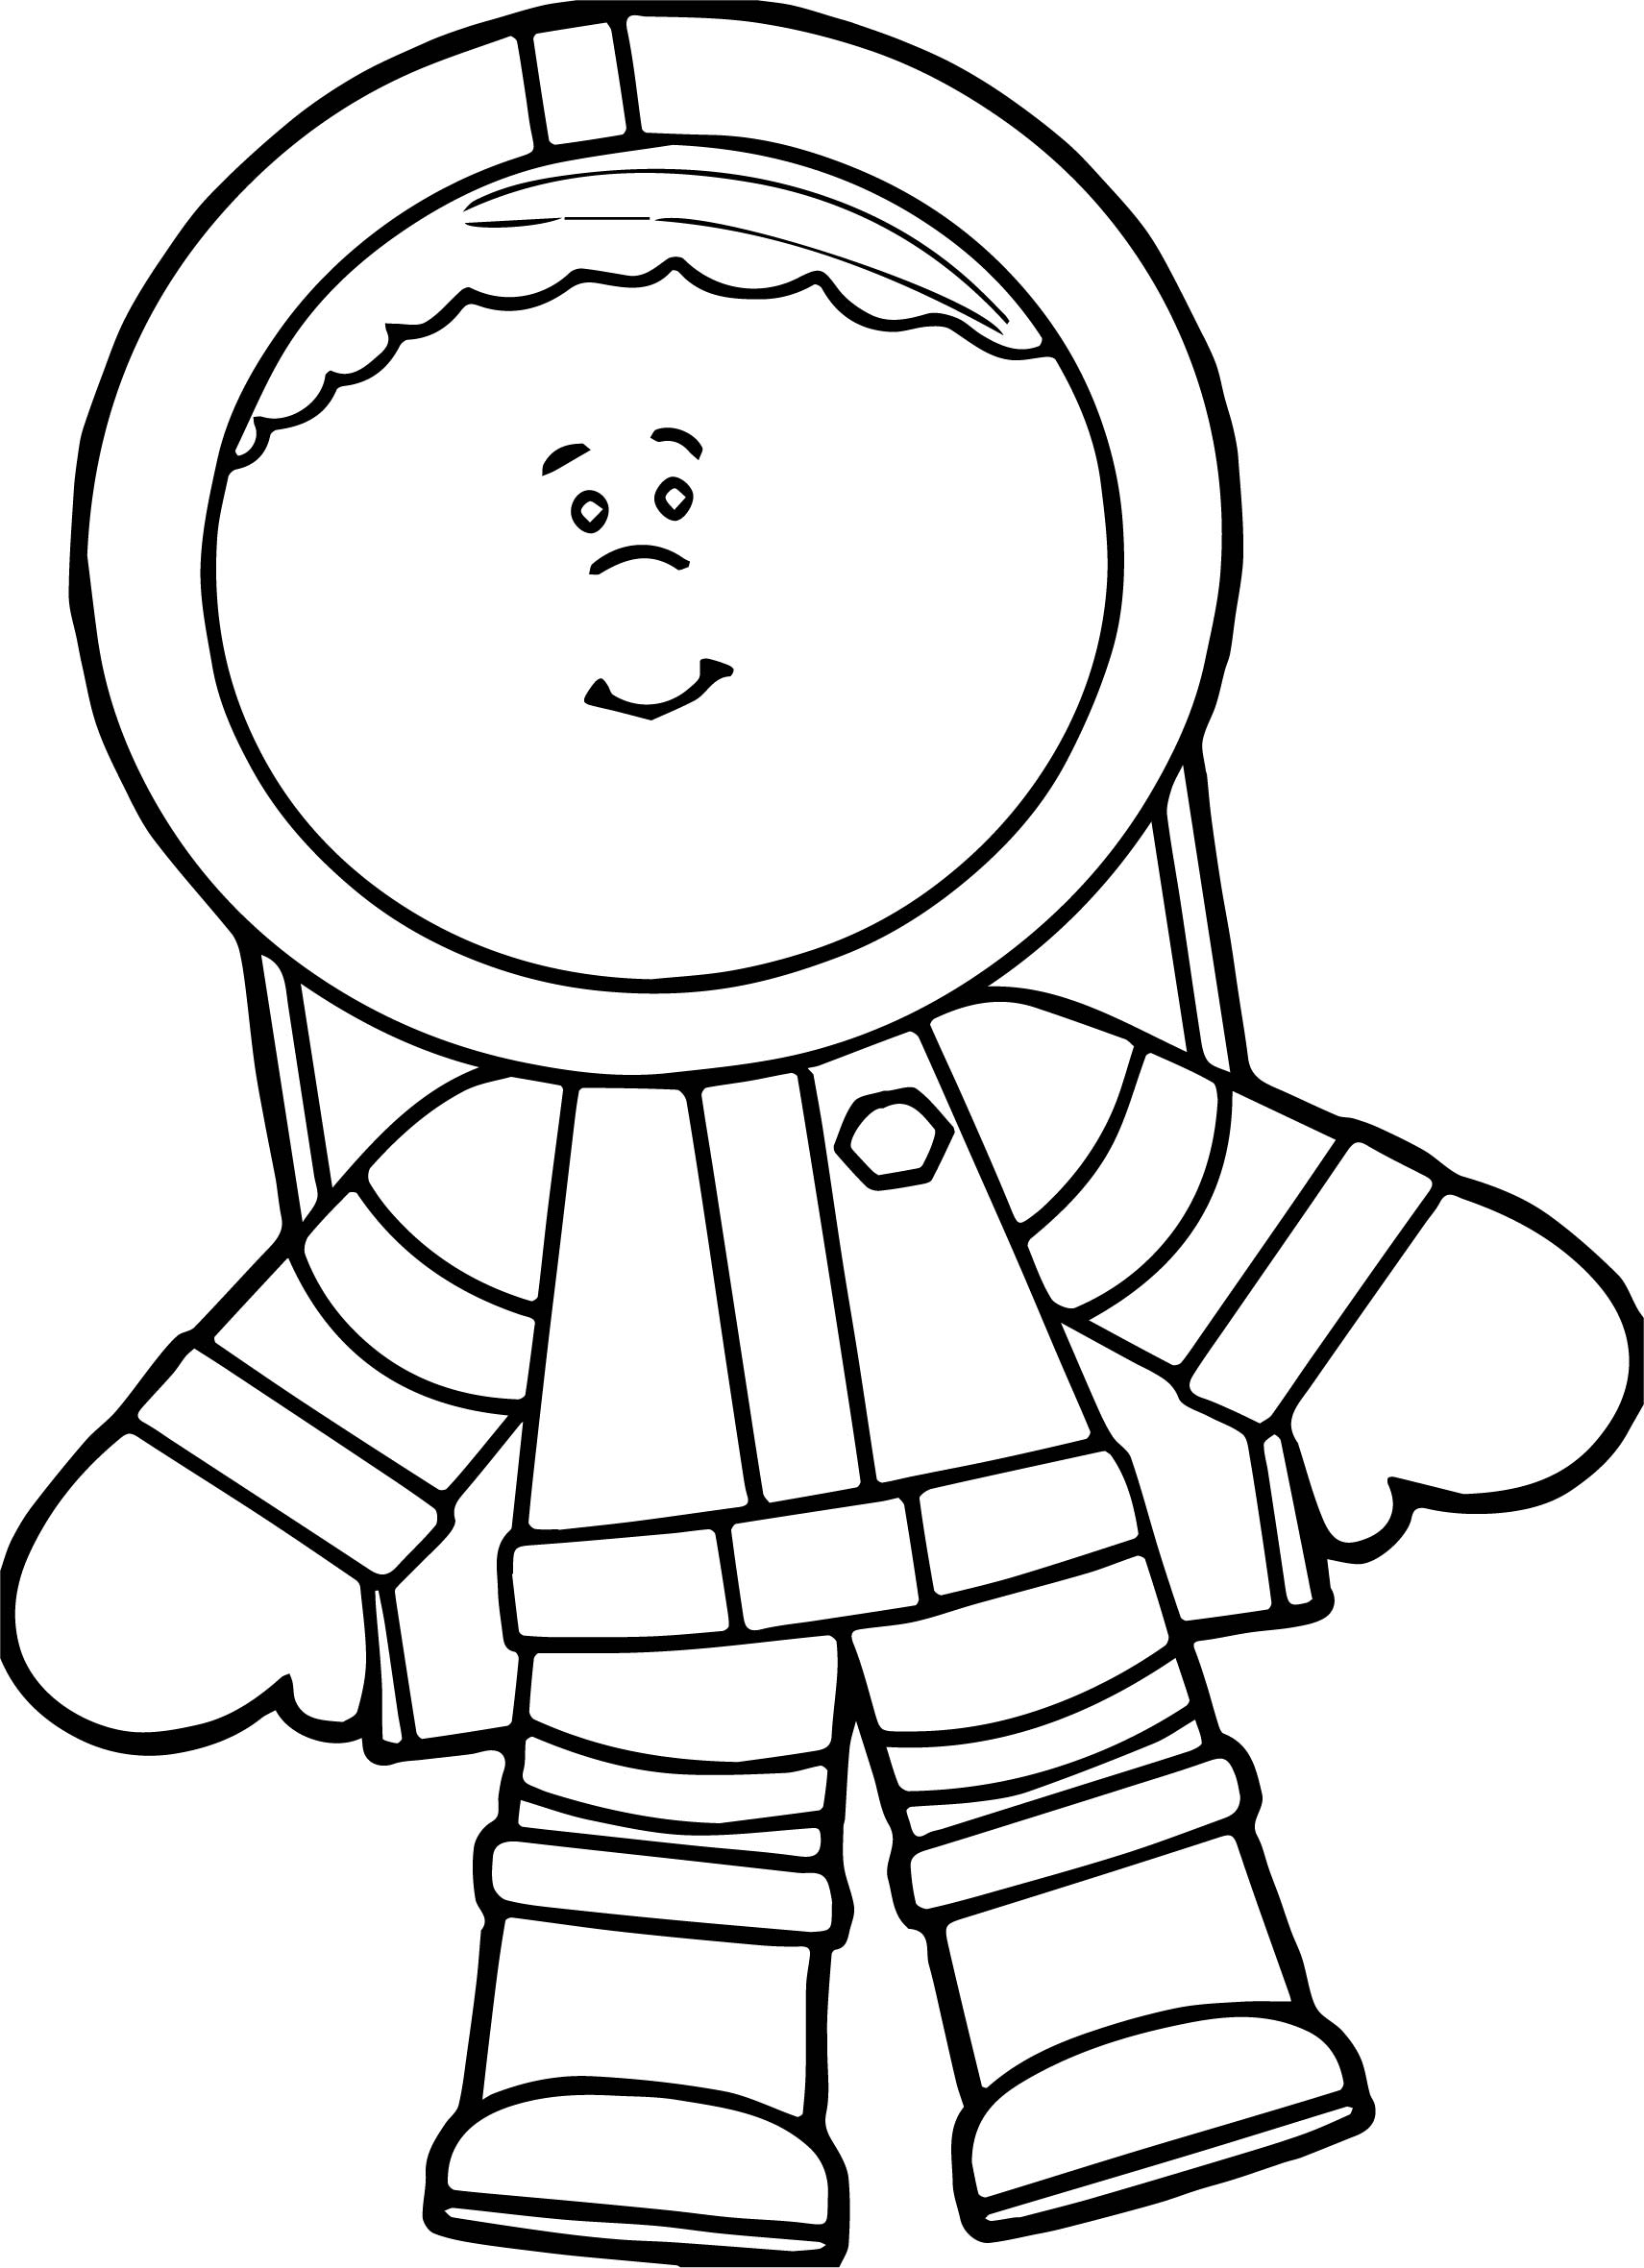 cute astronaut boy coloring page wecoloringpage